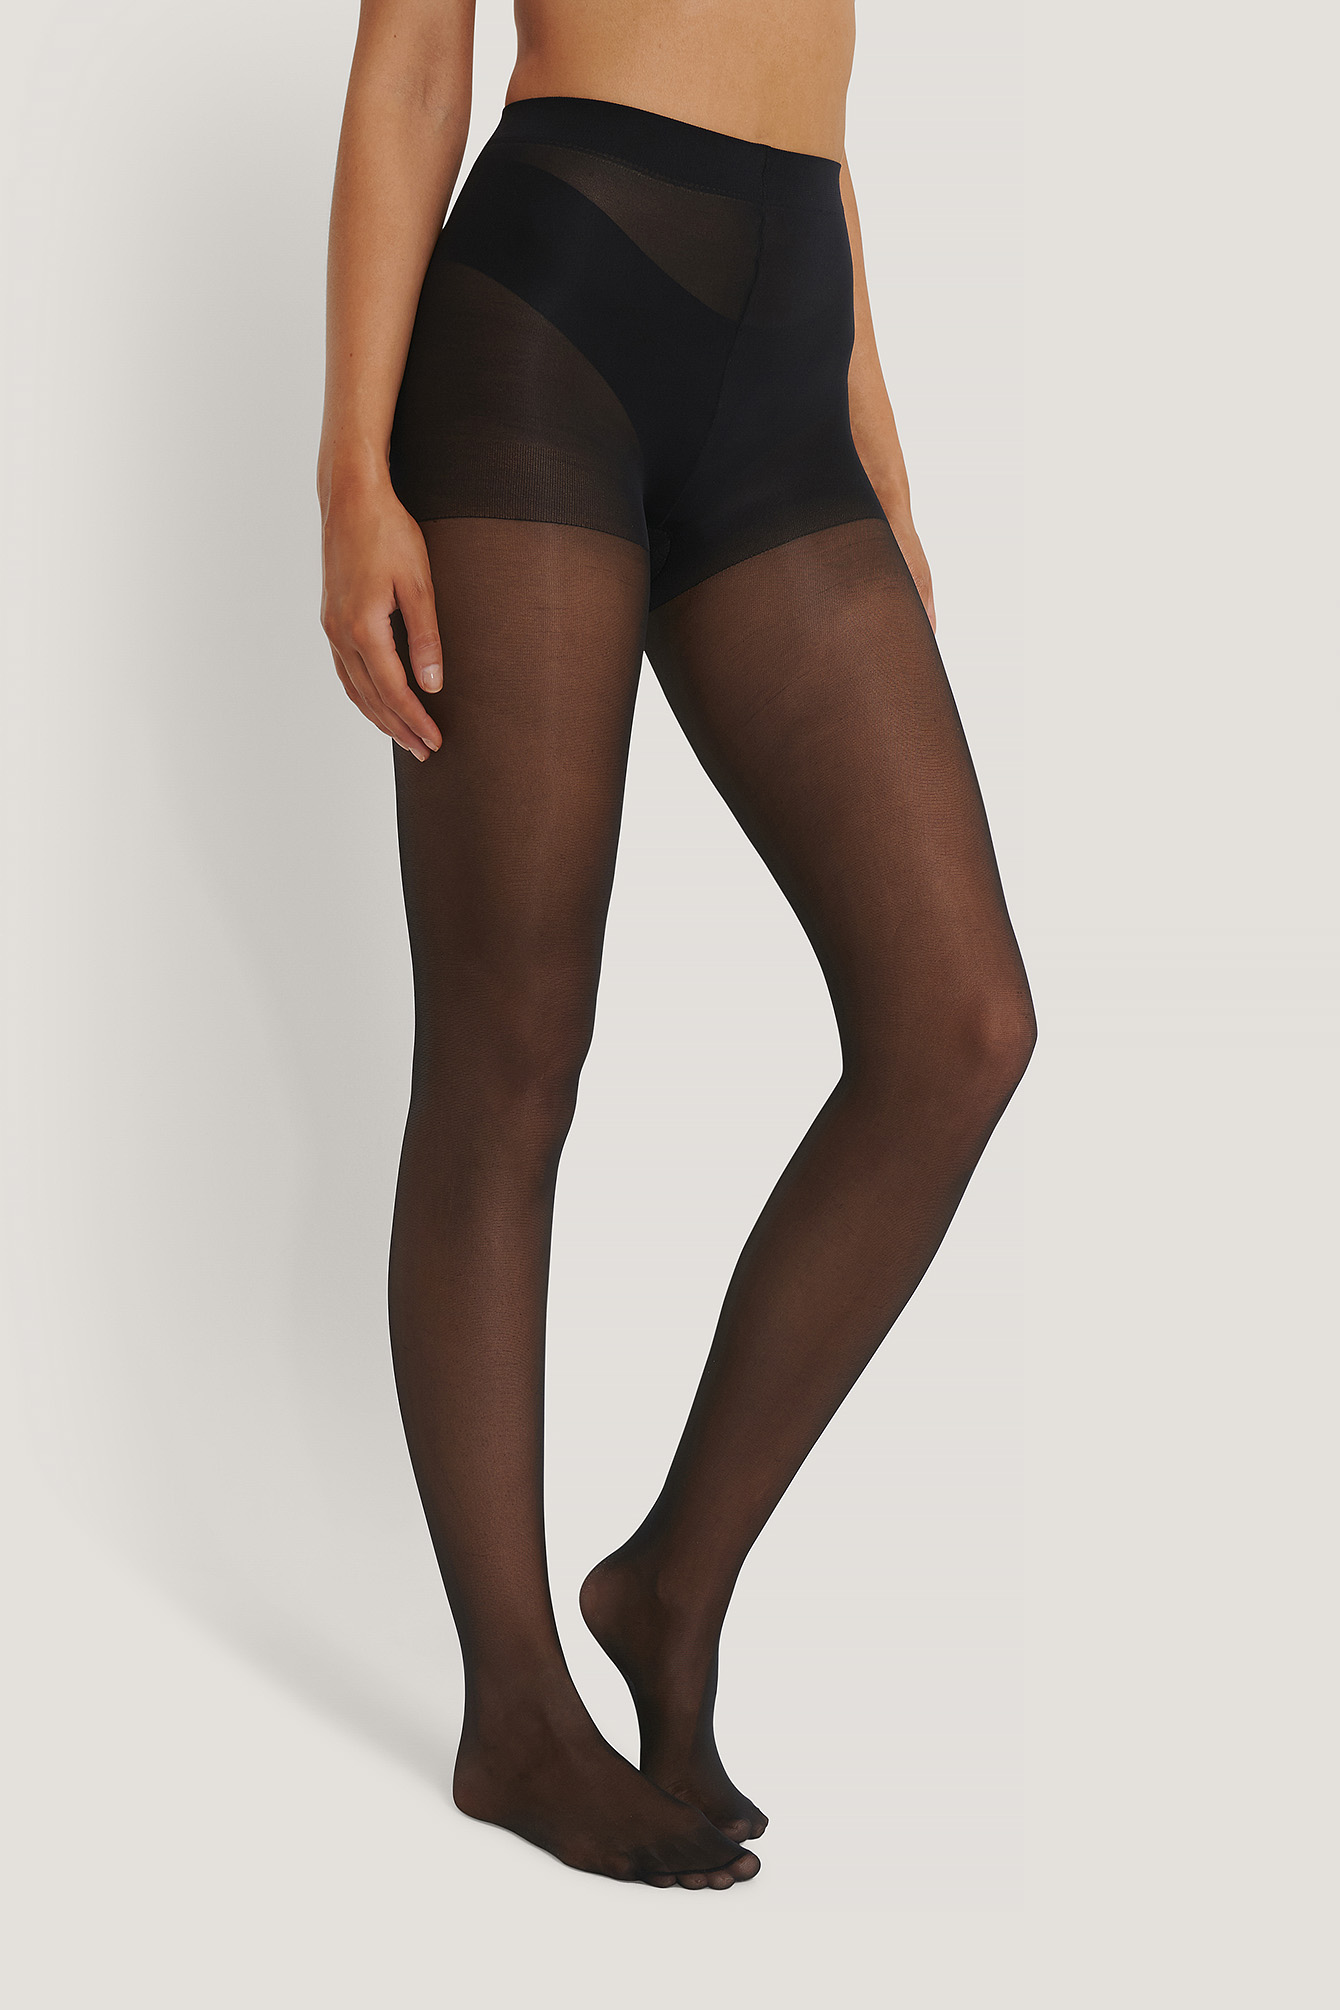 Black Tights 30 DEN 2-pack